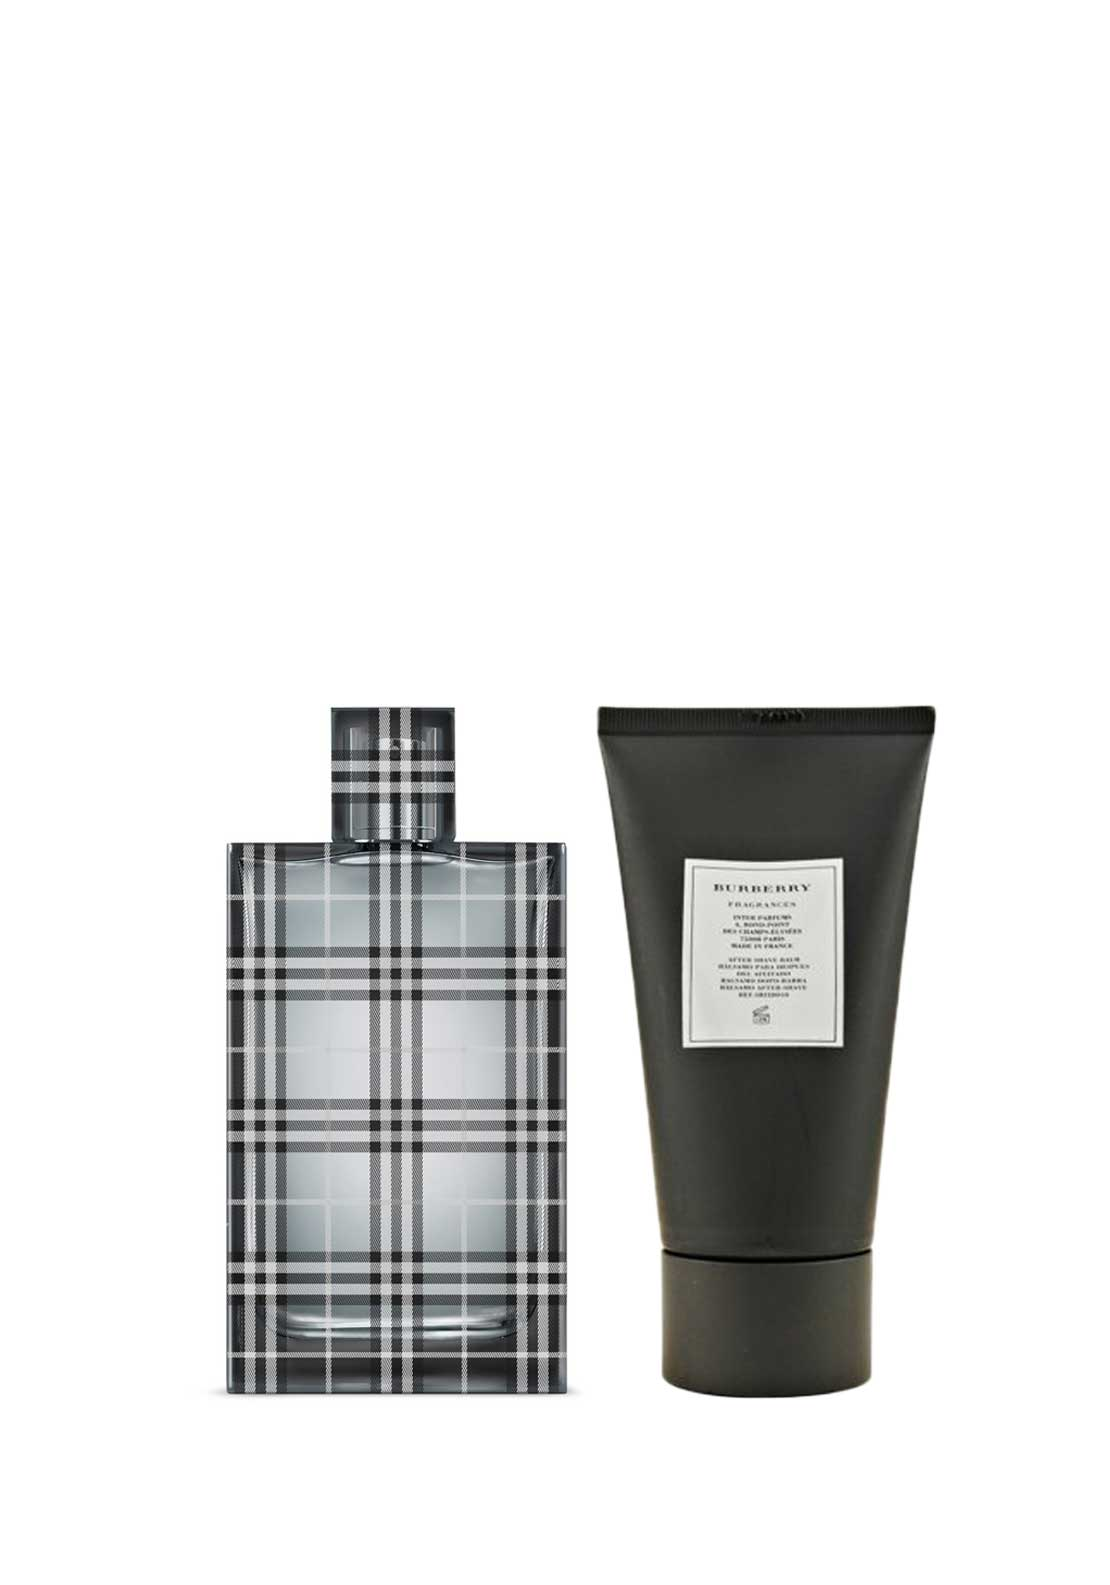 Burberry Brit Eau de Toilette Gift Set for him, 30ml